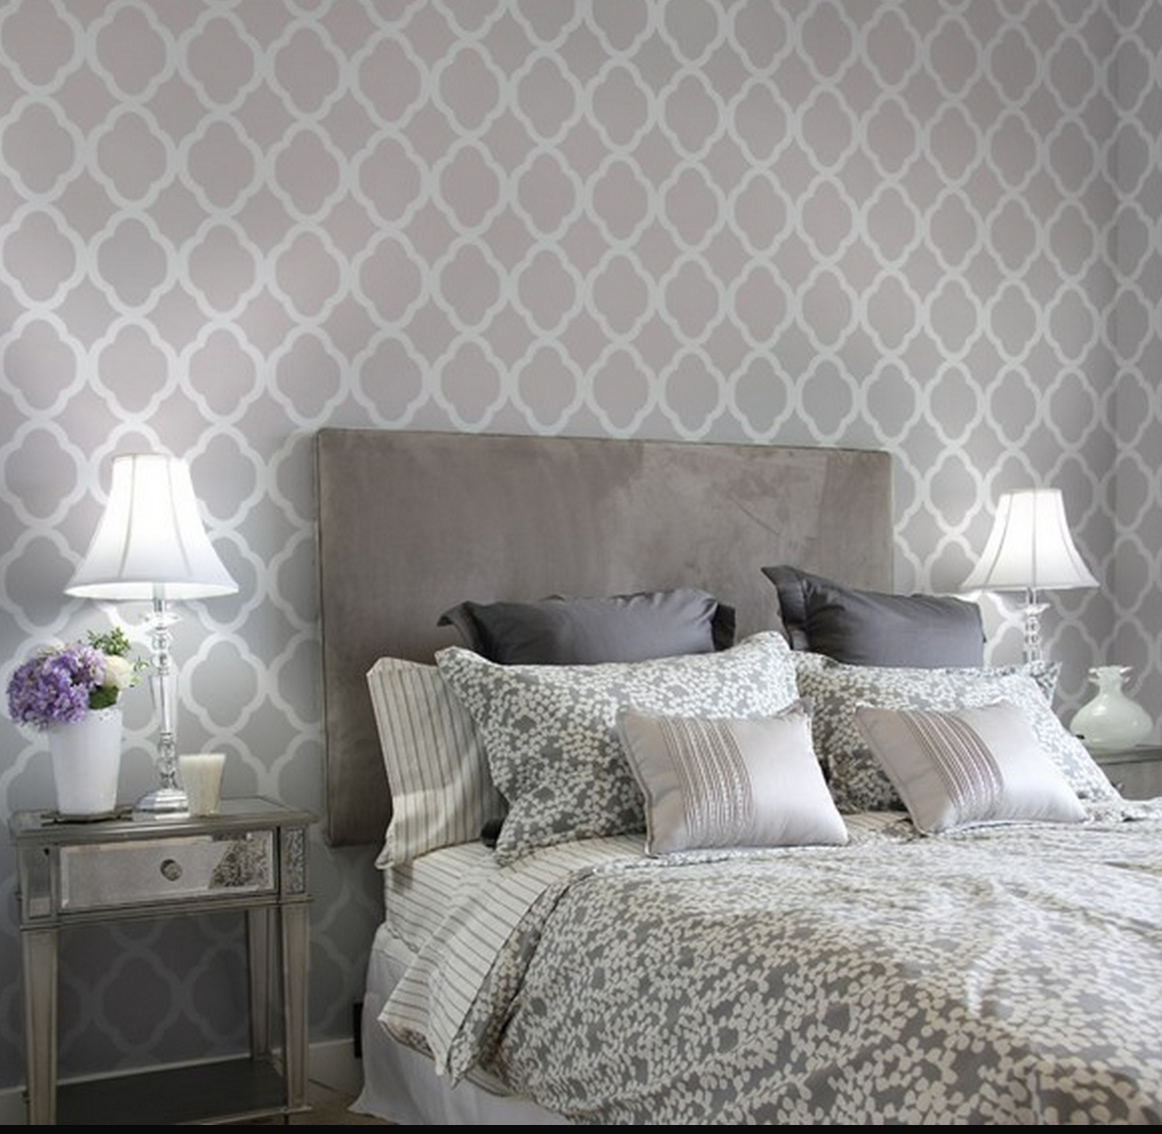 Grey Bedroom Decorating: Grey On Gray Bedroom Decor